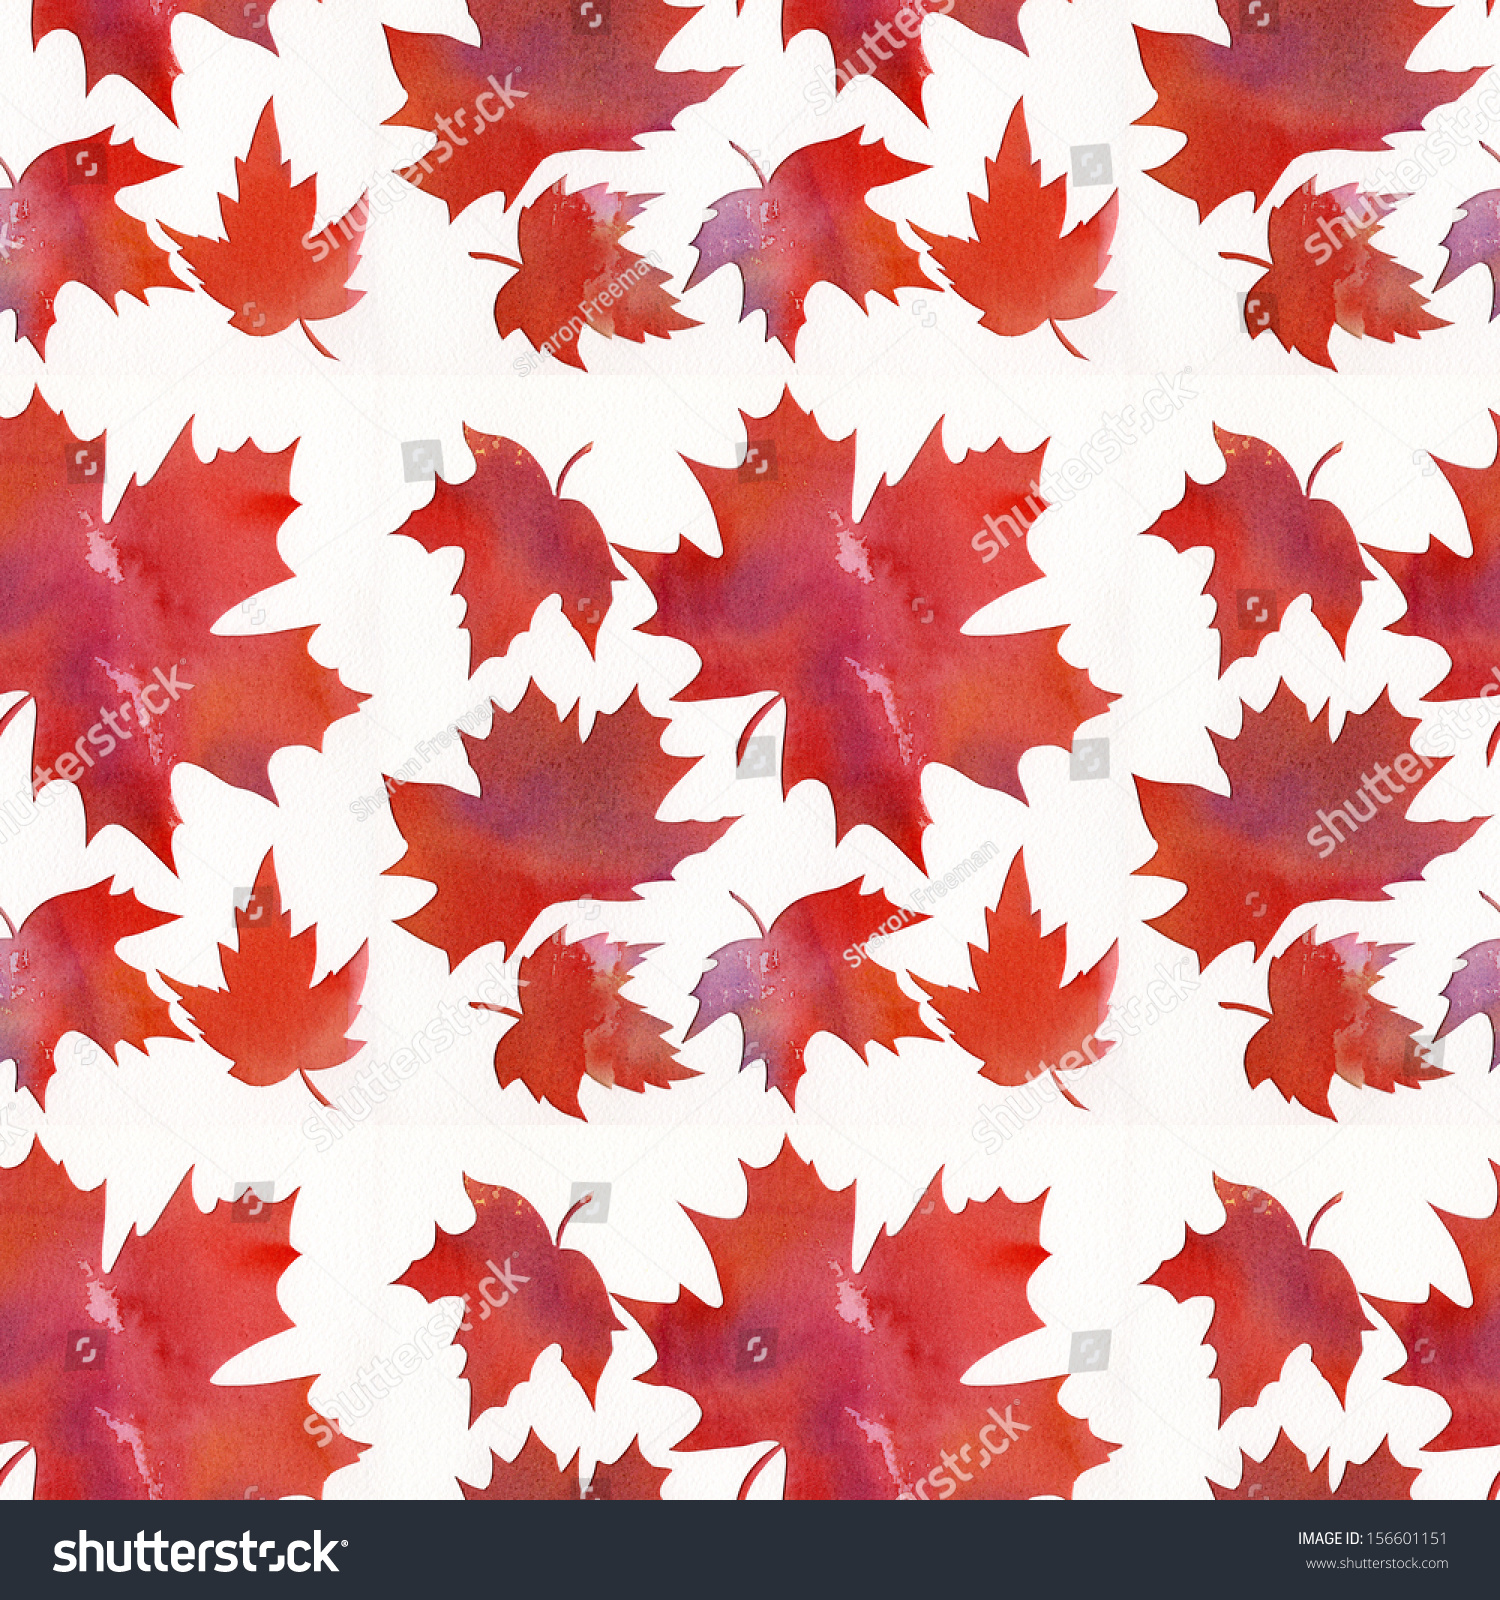 Orange maple leaf pattern abstract watercolor stock illustration orange maple leaf pattern abstract watercolor painting with stencil design of maple leaves pronofoot35fo Image collections